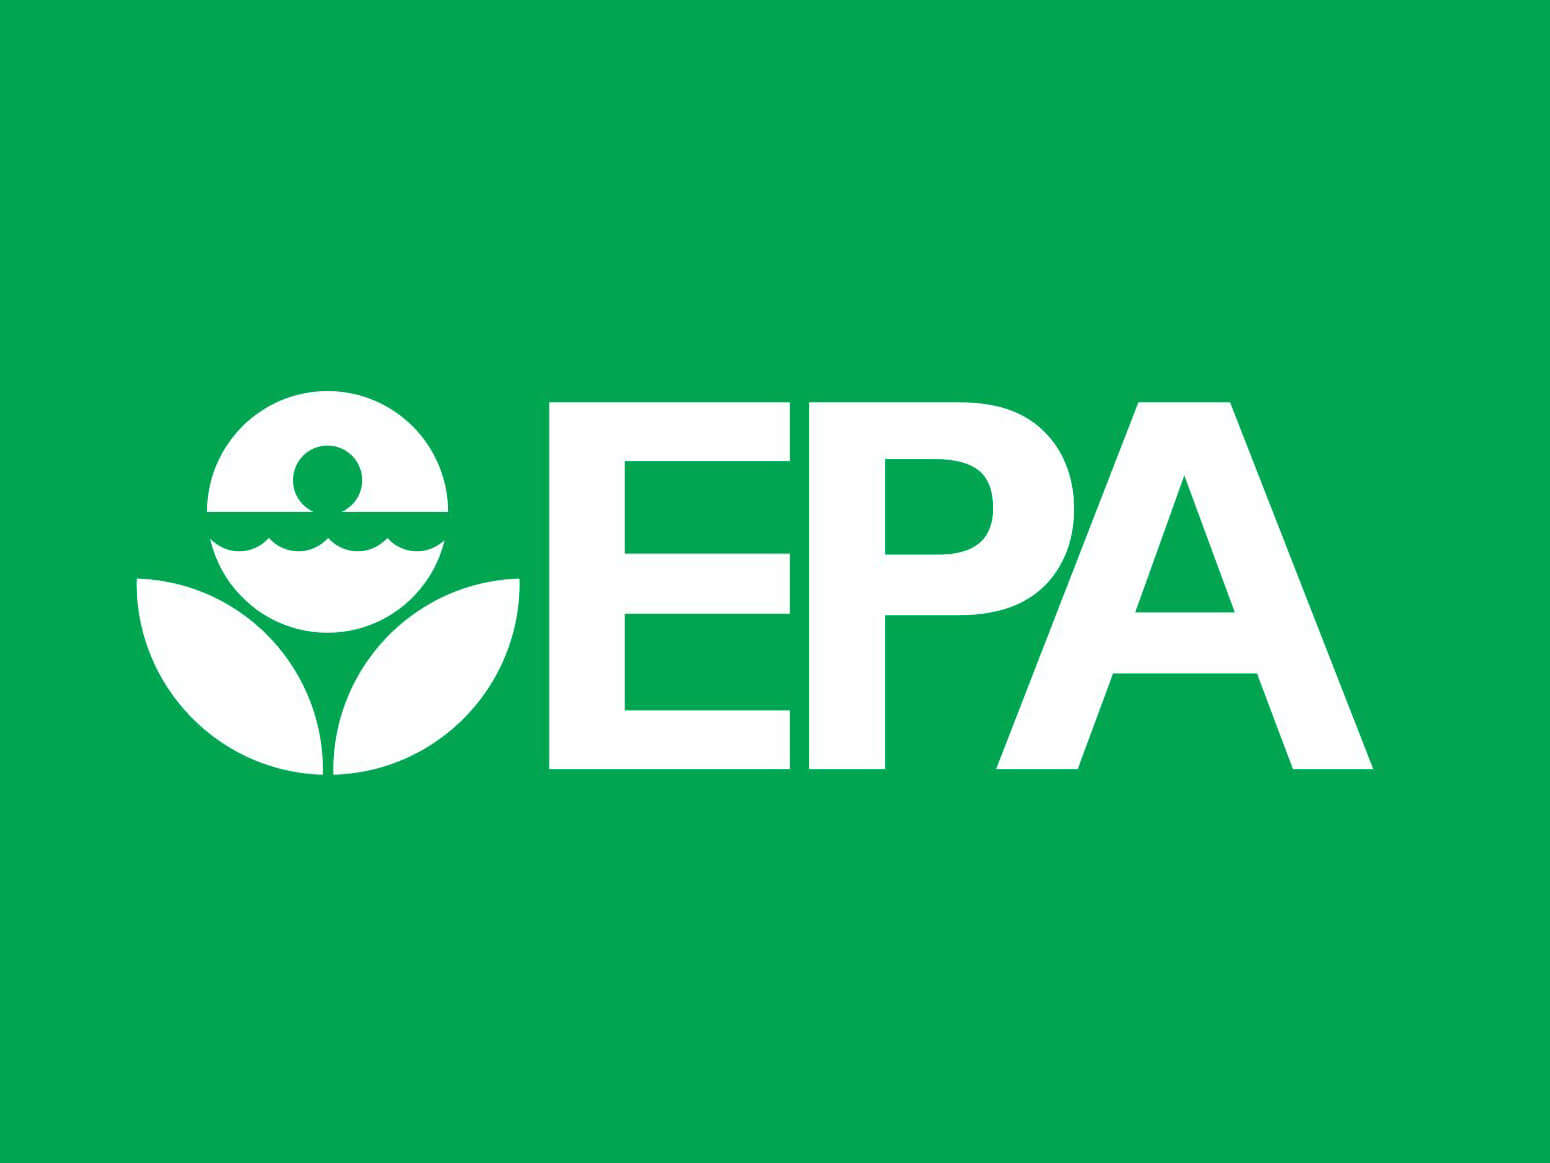 Here are some tips from the EPA